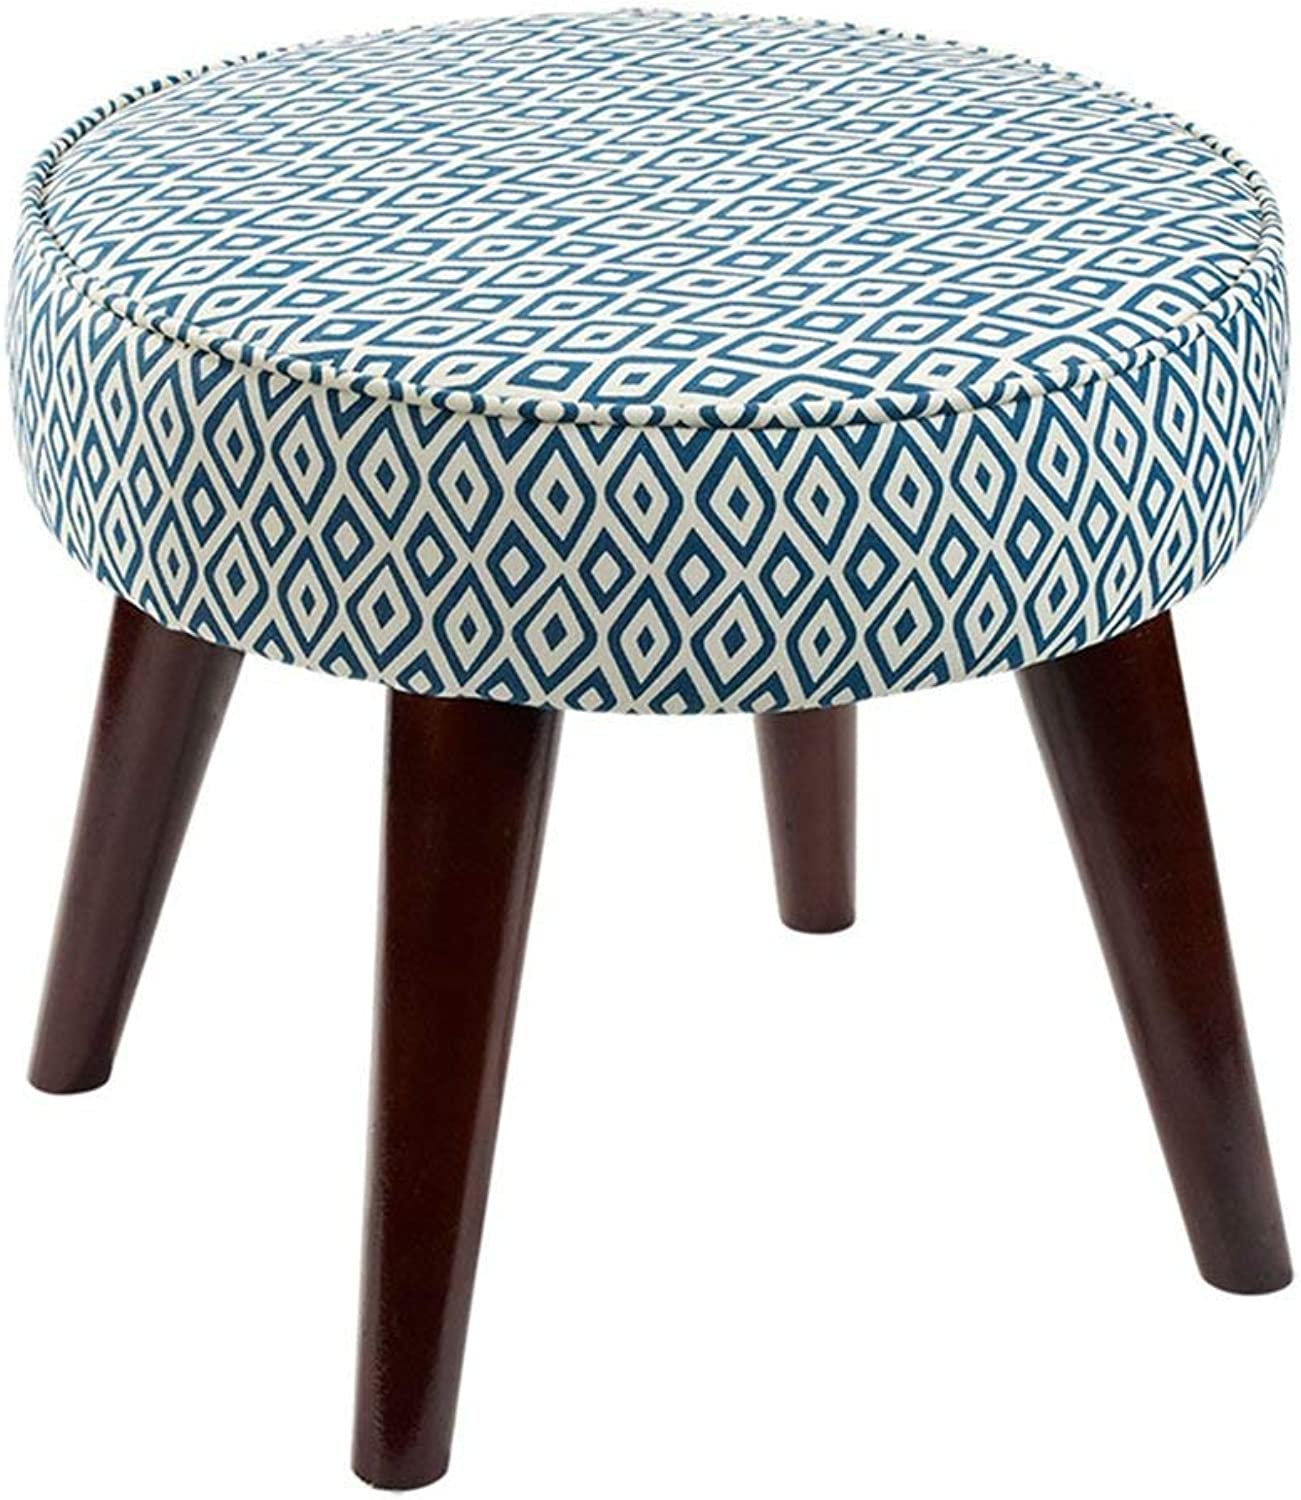 Dengzi Four Footstool Change shoes Stool Fabric Sofa Stool Solid Wood Foot Stool Simple Modern Footstool shoes Small Stool (color   bluee)